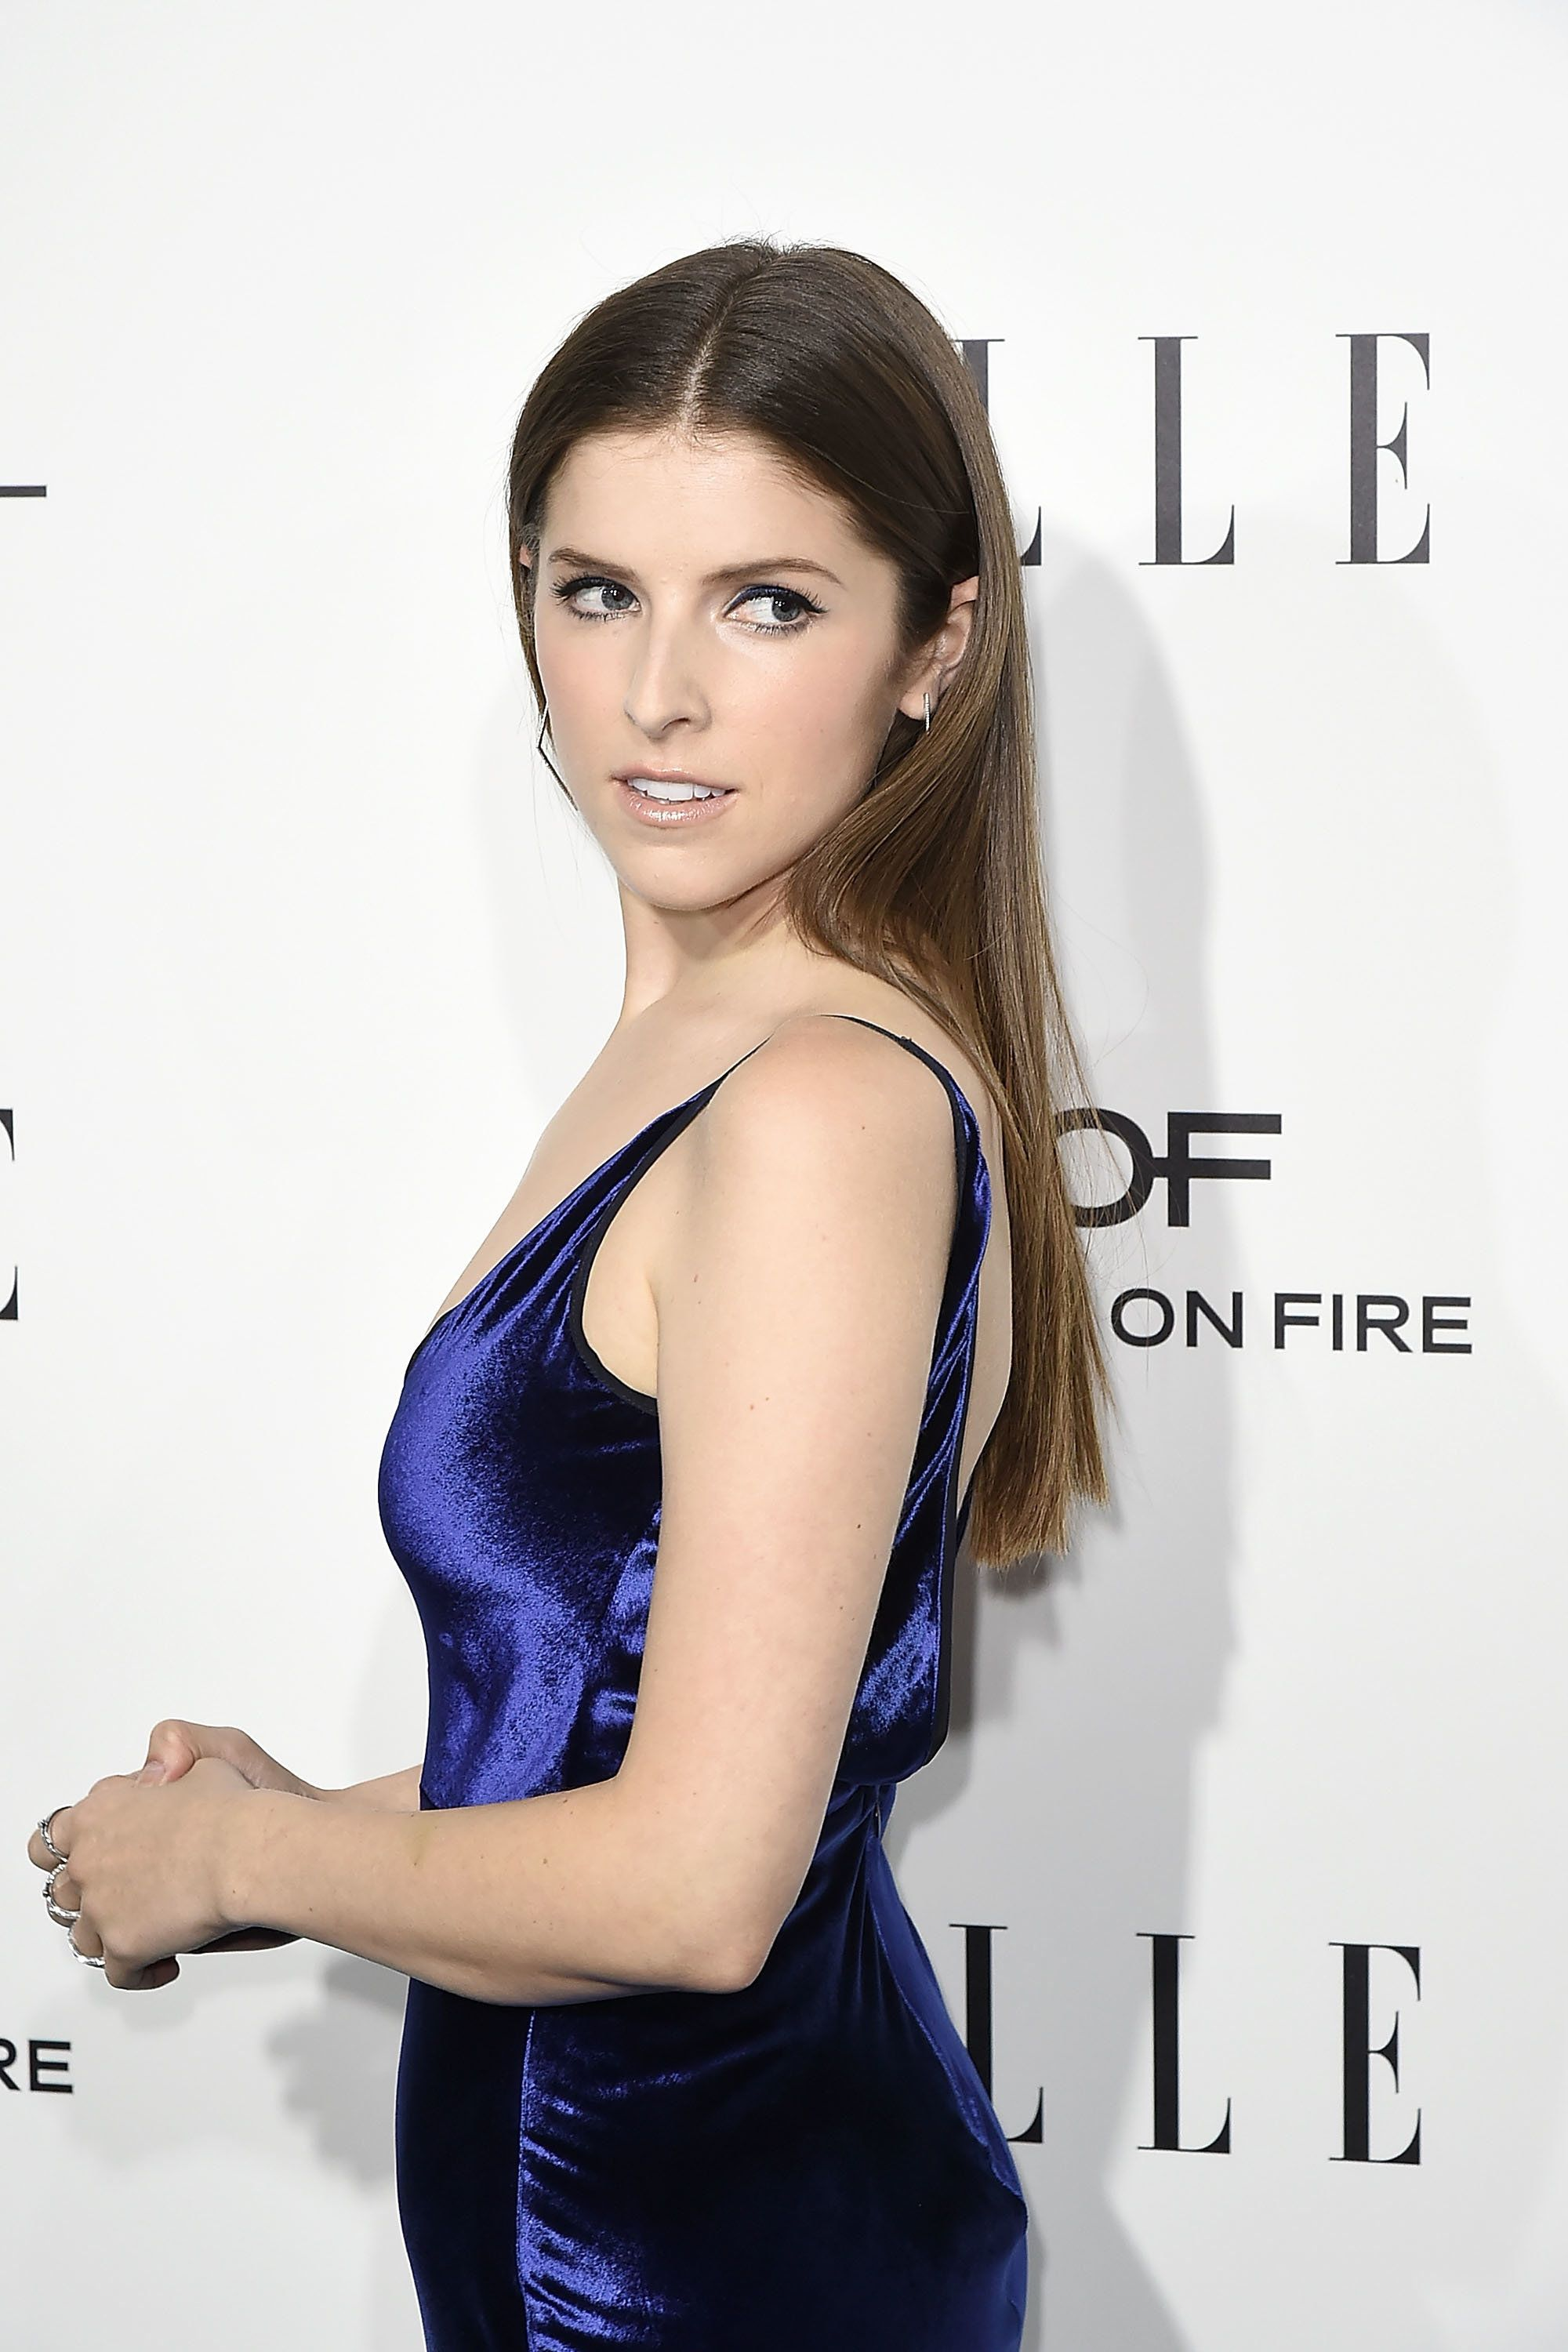 BEVERLY HILLS, CA - OCTOBER 24:  Anna Kendrick attends the 23rd Annual ELLE Women In Hollywood Awards - Arrivals at The Four Seasons Hotel on October 24, 2016 in Beverly Hills, California.  (Photo by David Crotty/Patrick McMullan via Getty Images)